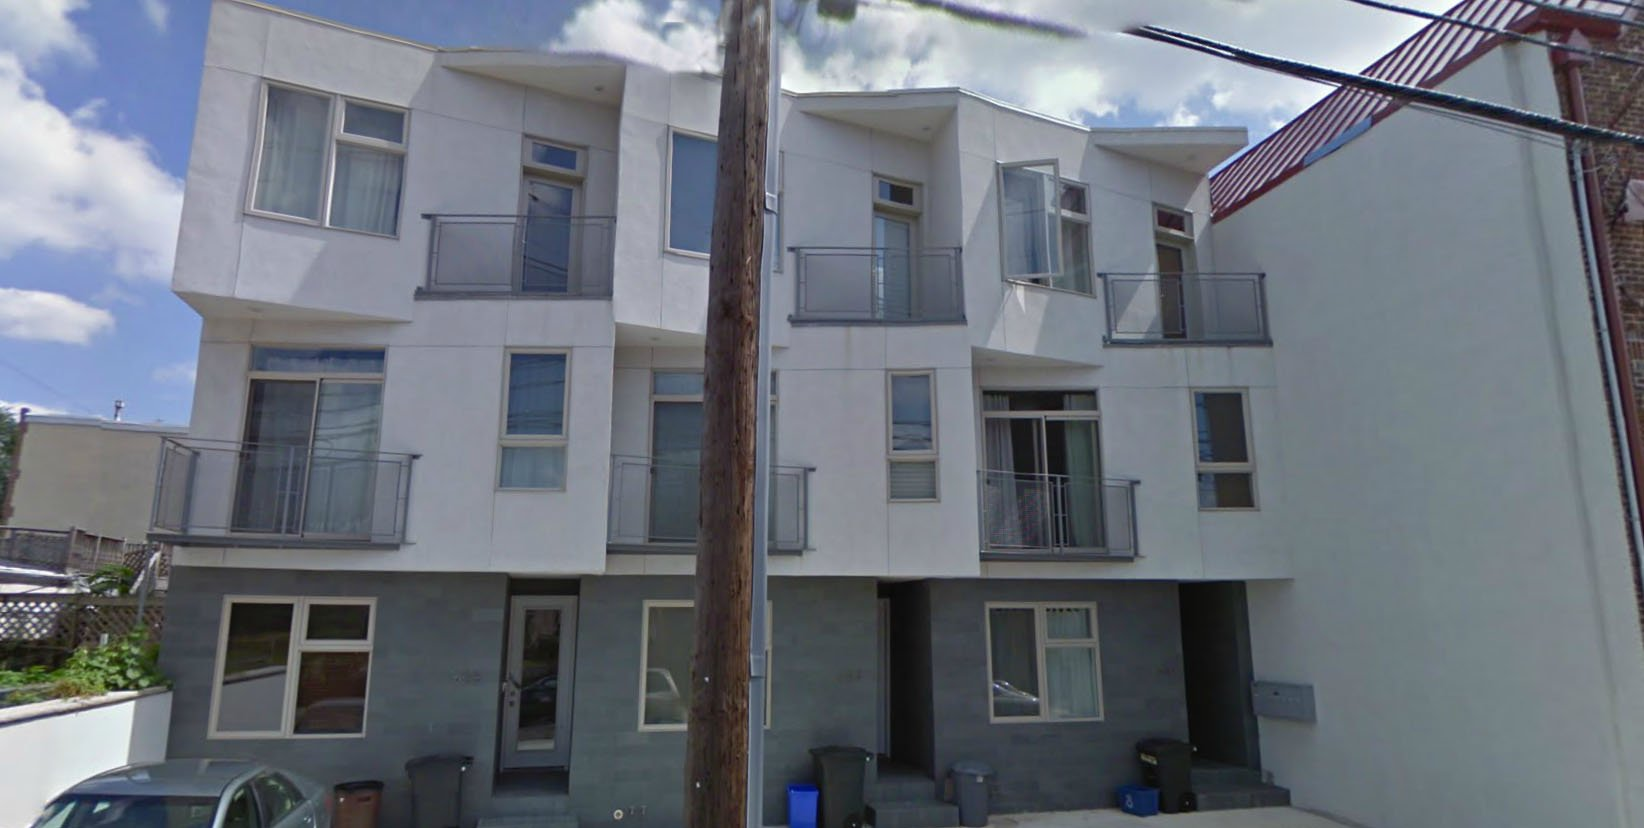 West Poplar Apartments